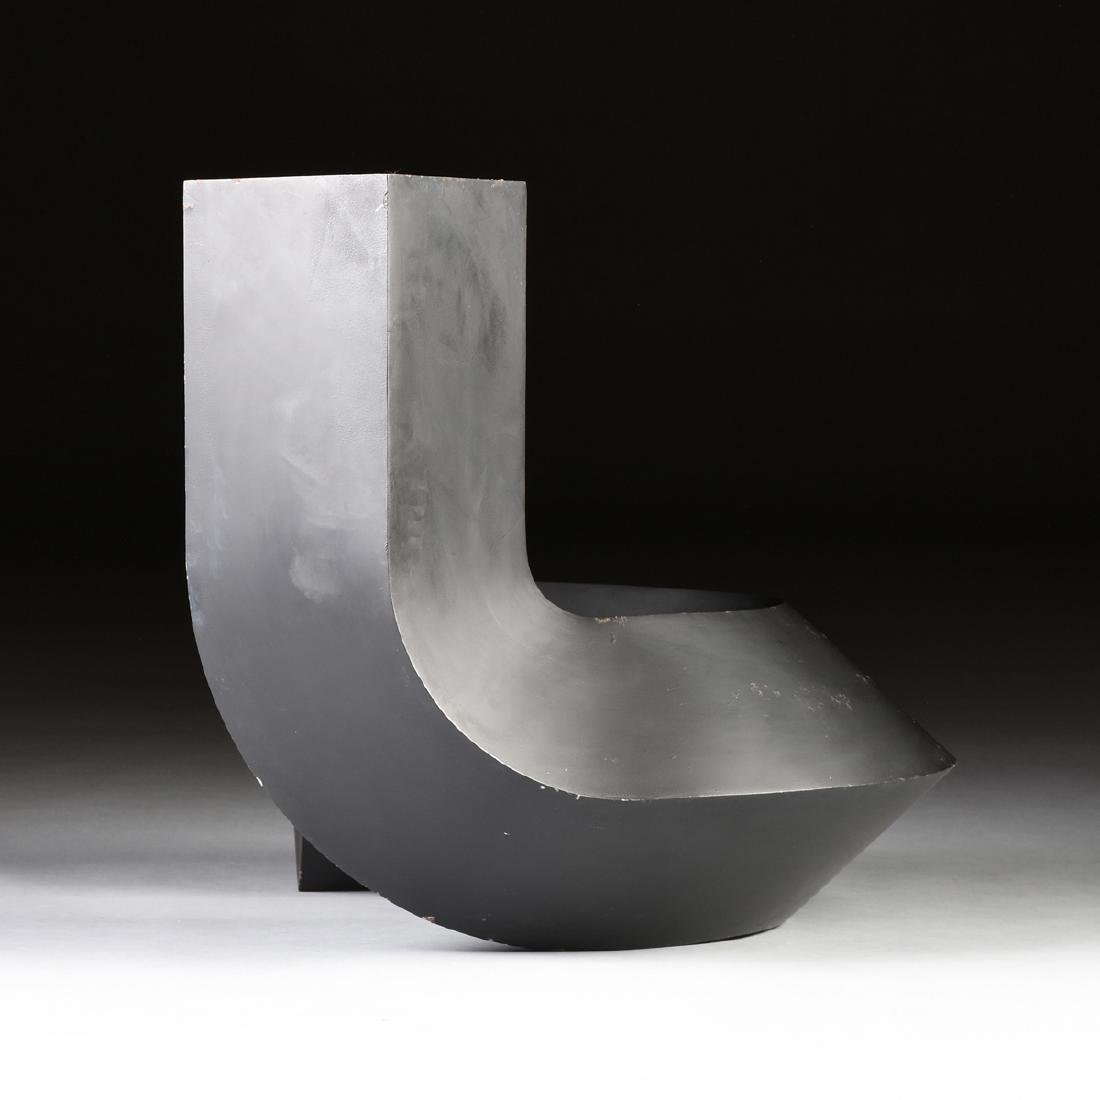 CLEMENT MEADMORE (American/Australian 1929-2005) A - 2